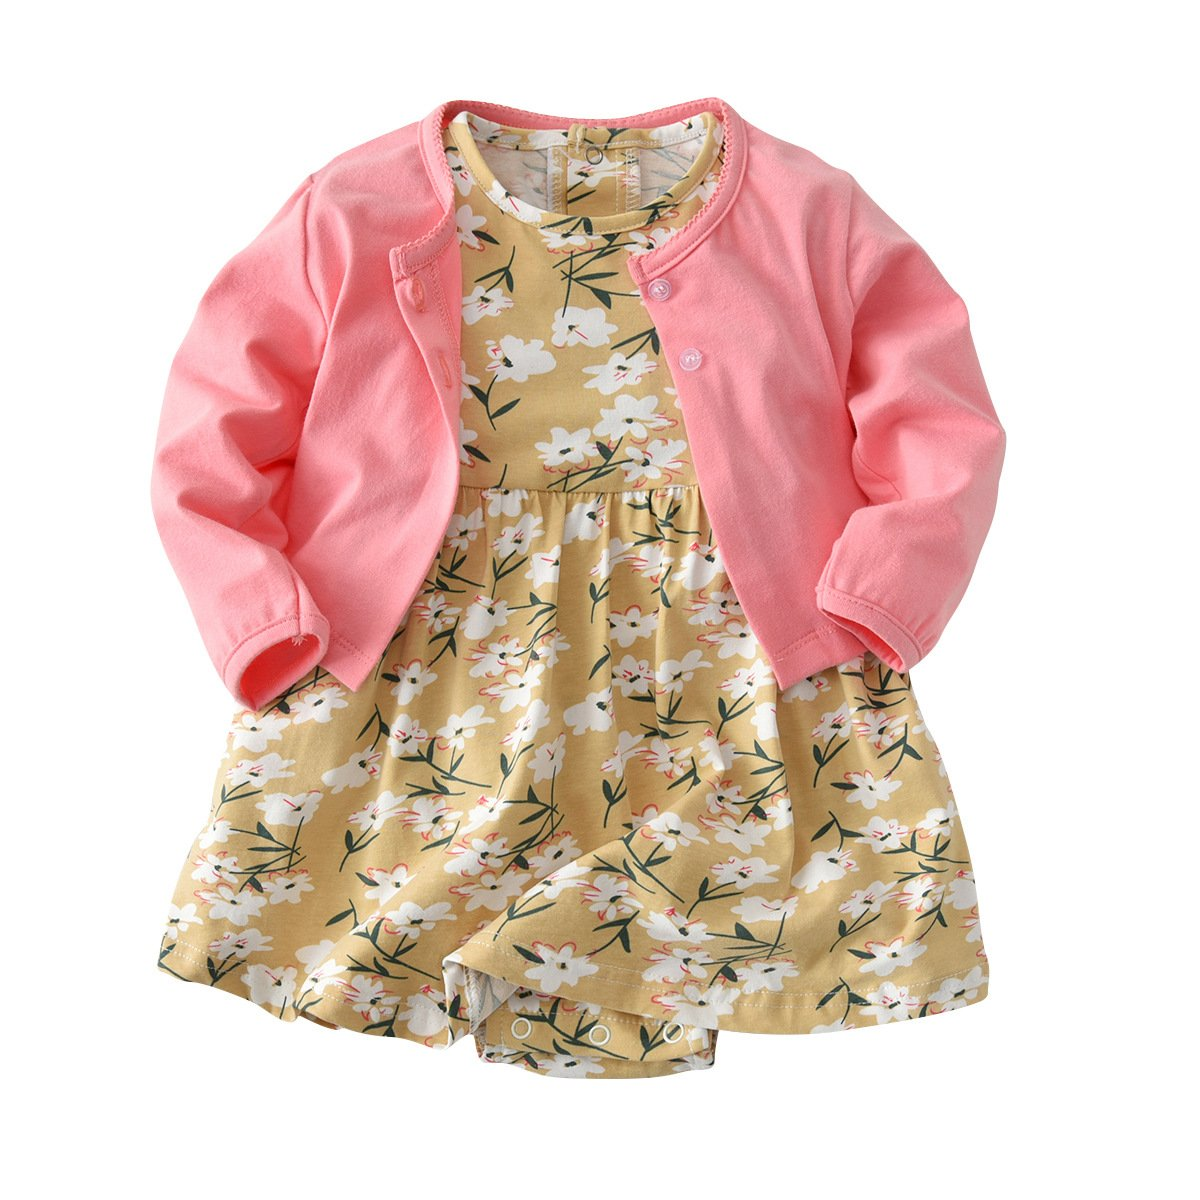 Baby Girl Long Sleeve Floral Romper Dress Skirt Casual Toddler Baby Girl Clothes Set Outfit